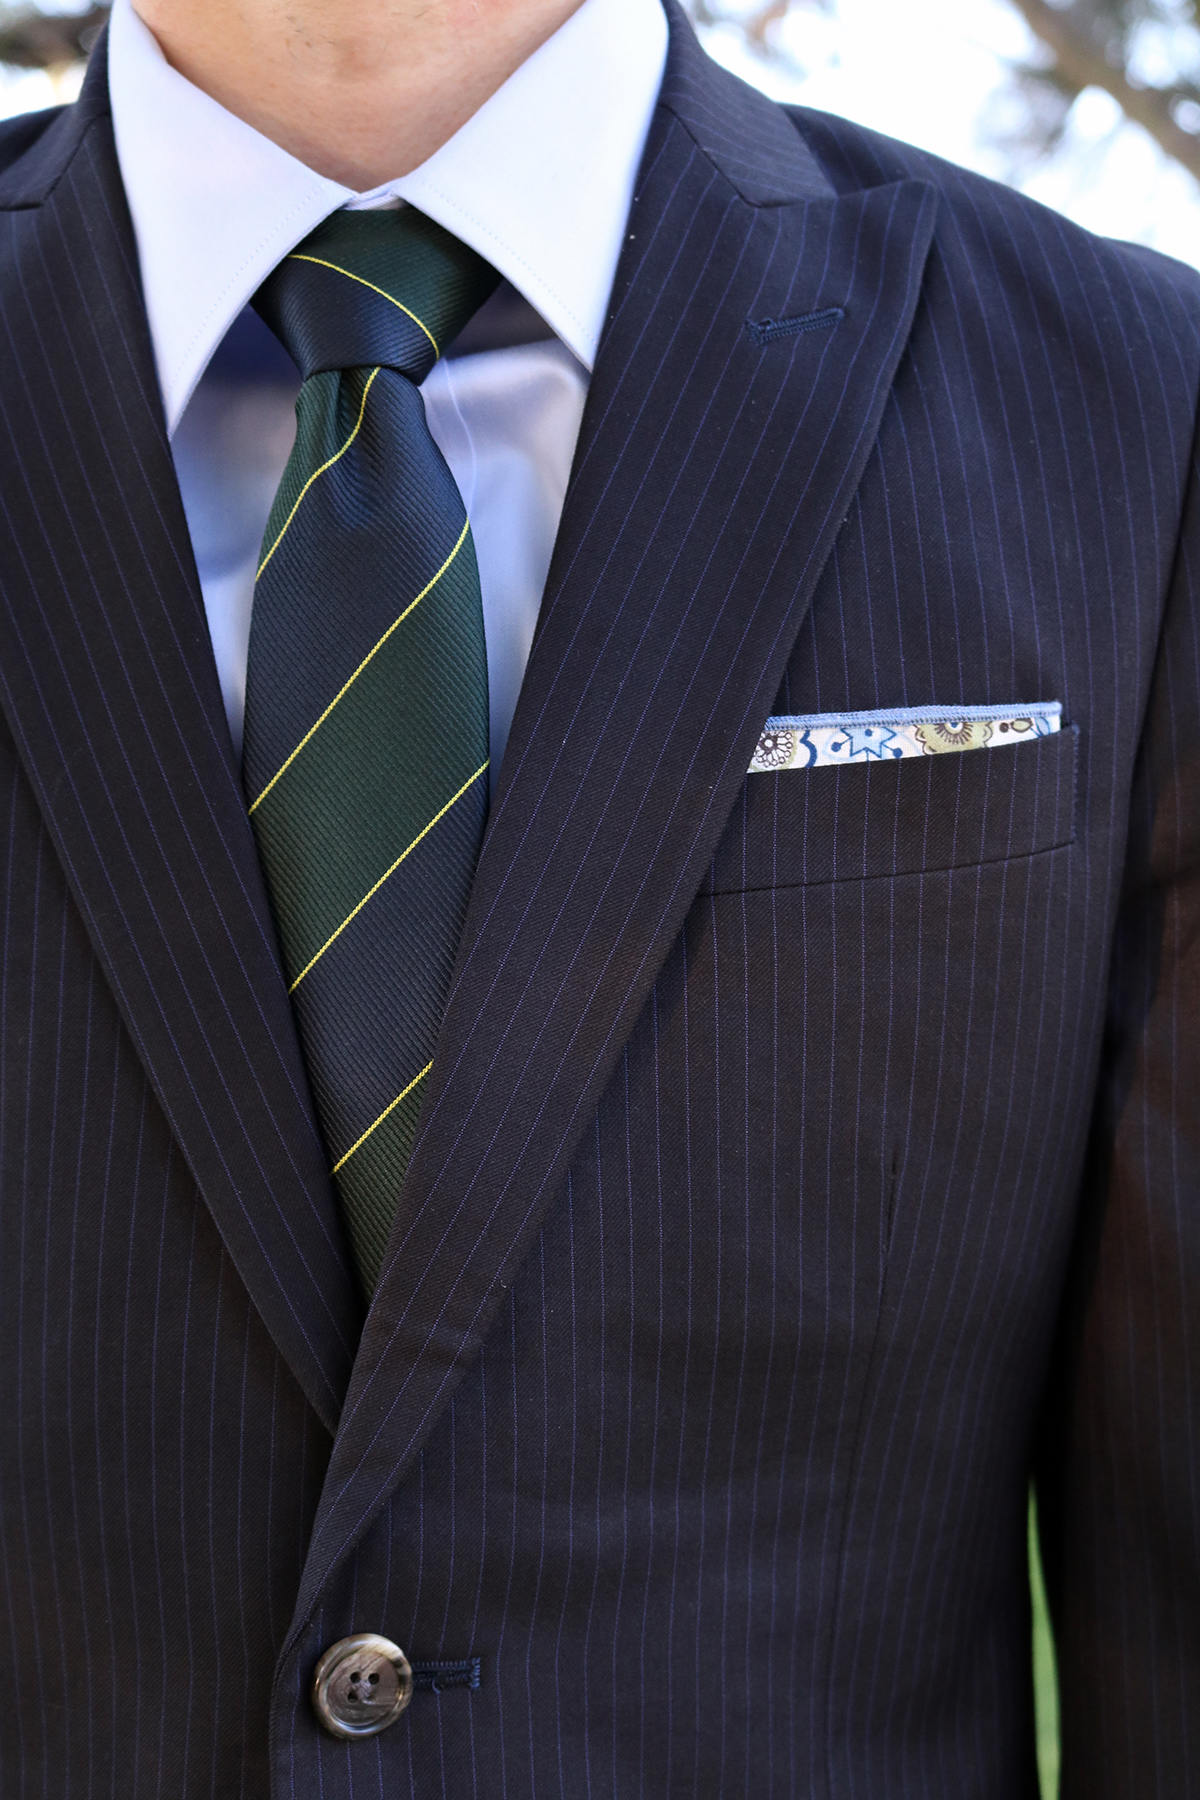 CottonBrew tie and pocket square